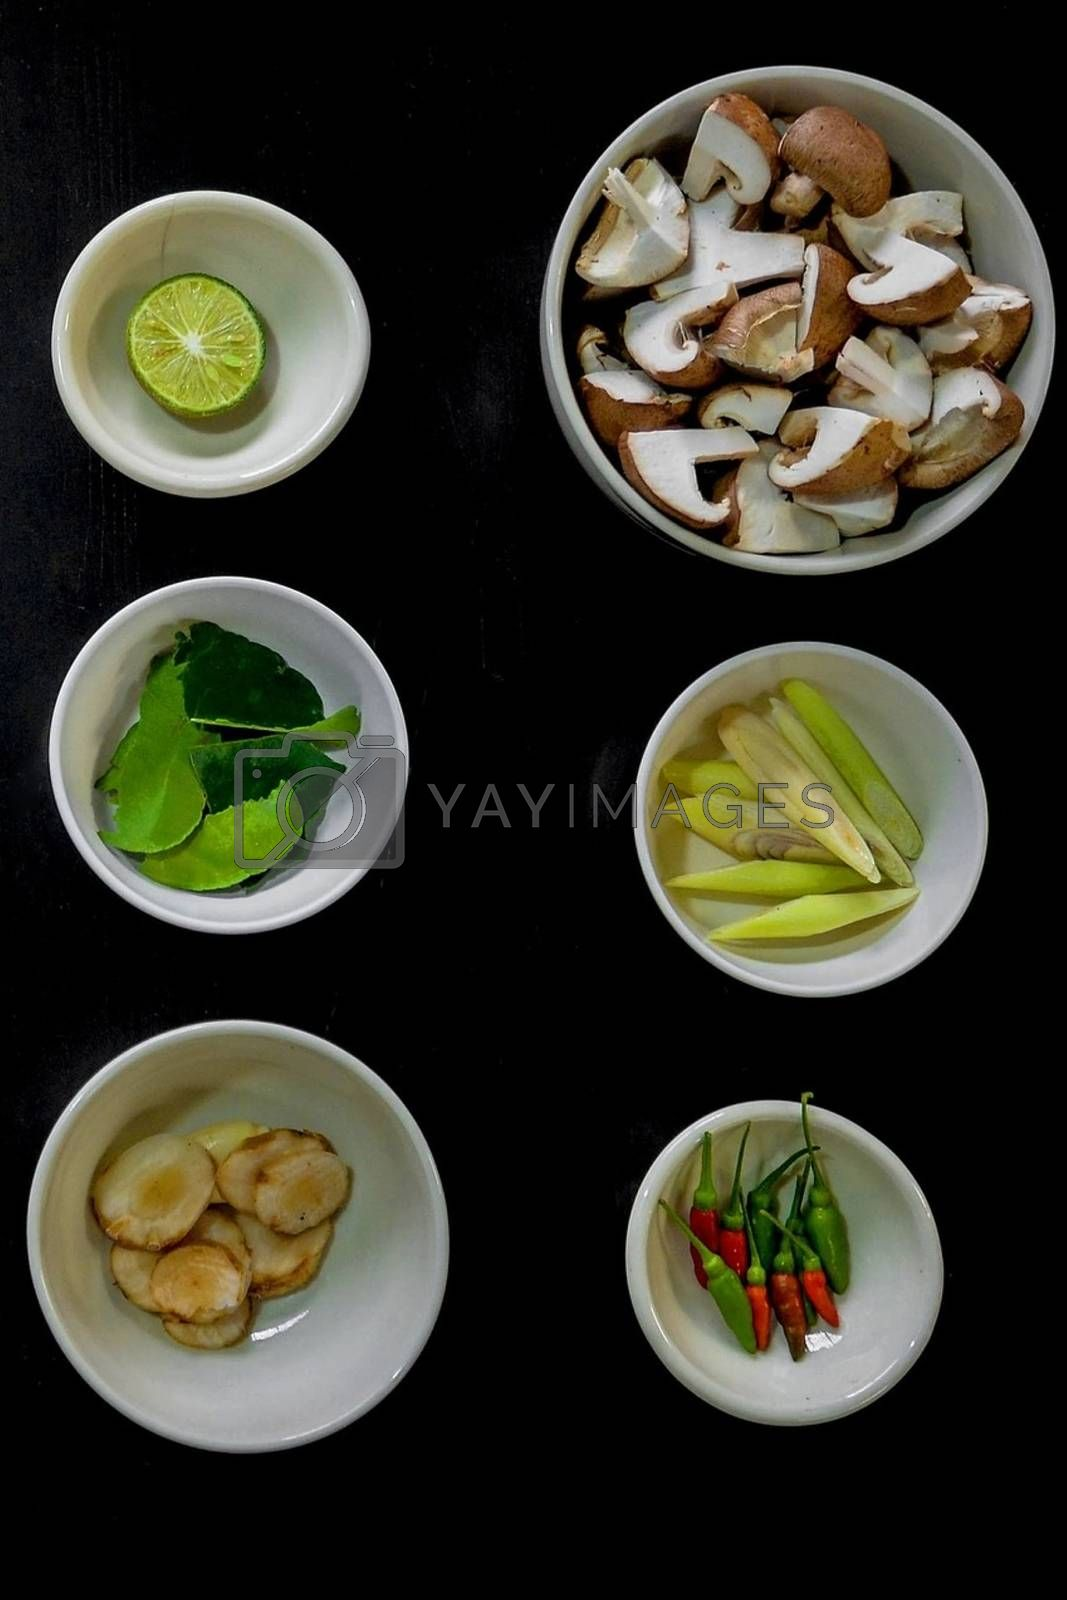 Royalty free image of Chili peppers with lime, mint, mushrooms, cucumber, walnut bowl with black background by balage941